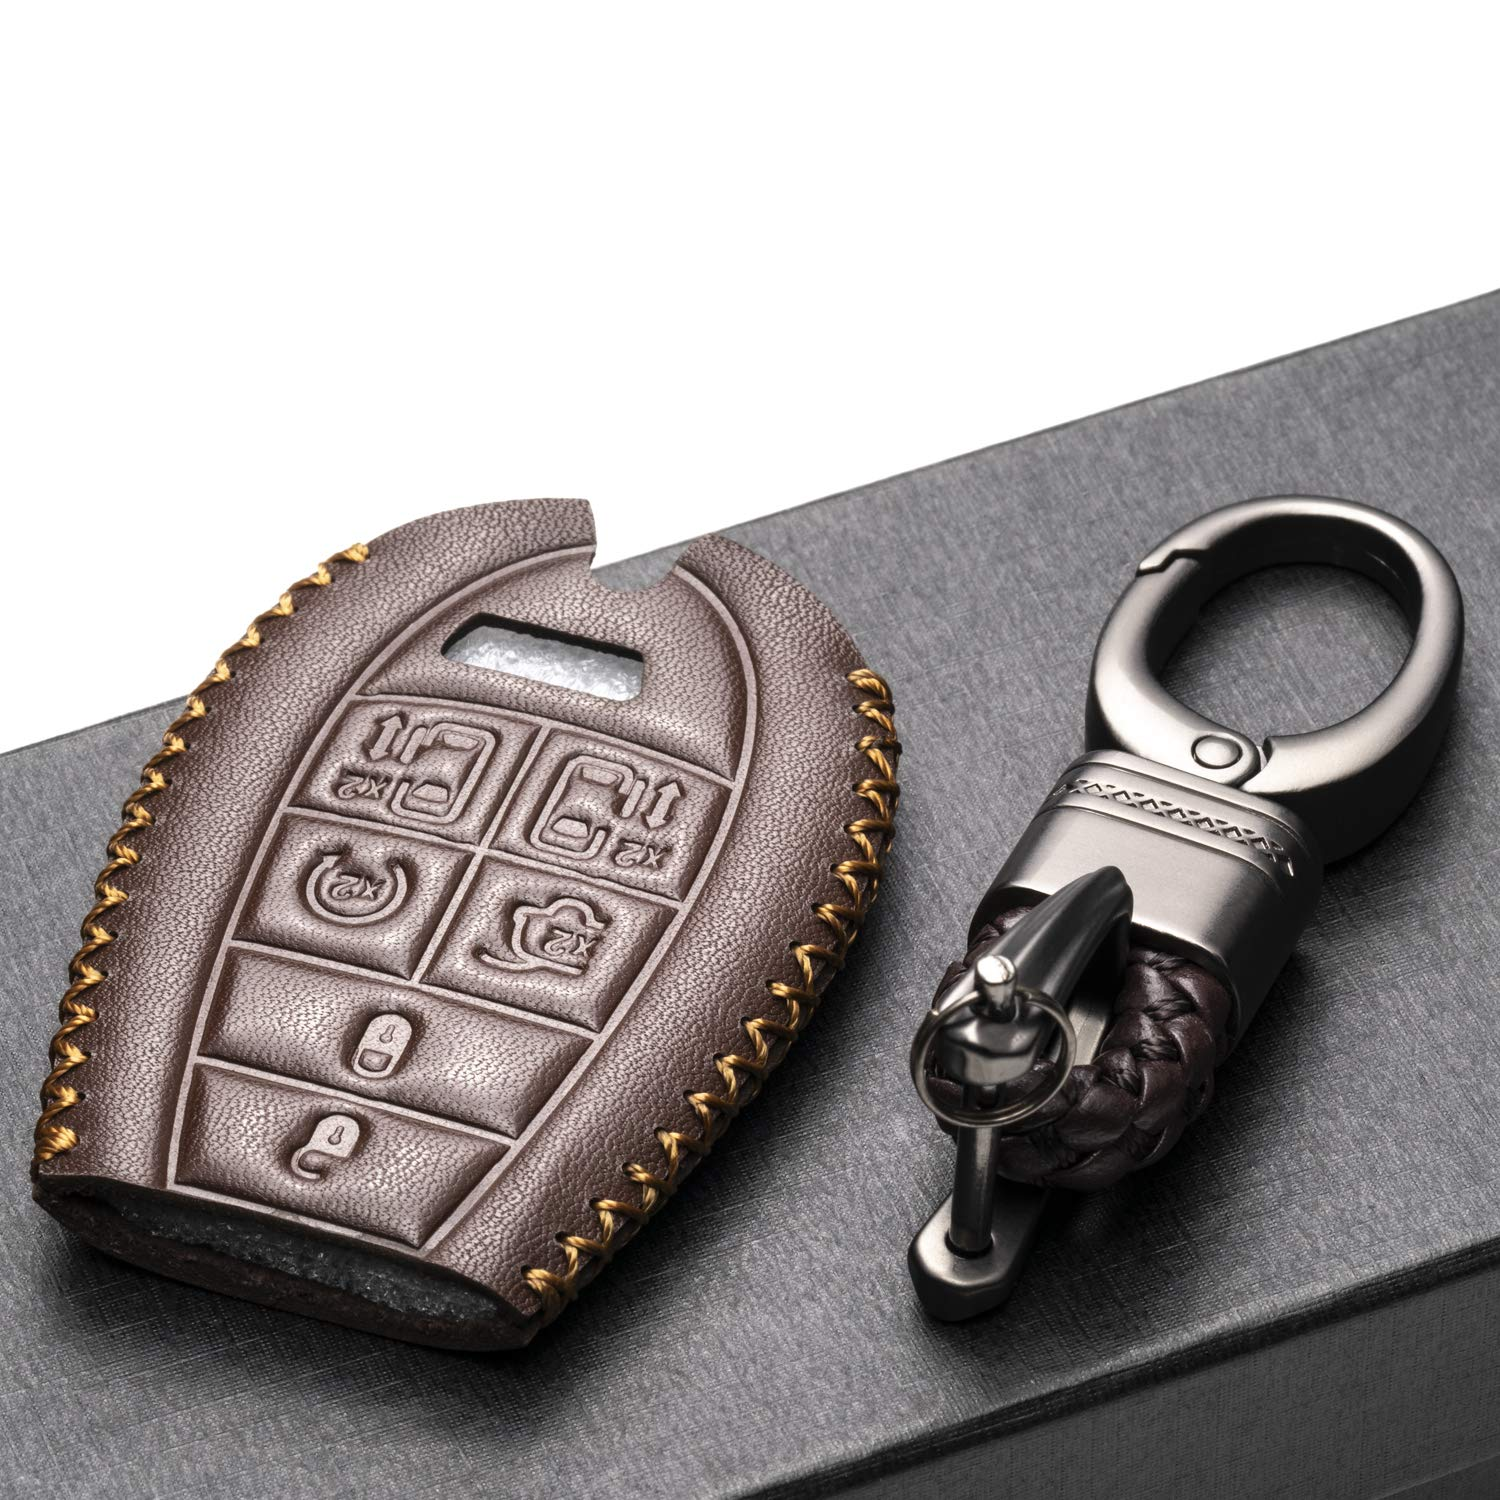 Vitodeco Genuine Leather Smart Key Fob Case Cover Protector with Leather Key Chain for 2008-2018 Dodge Grand Caravan 7-Button, Black